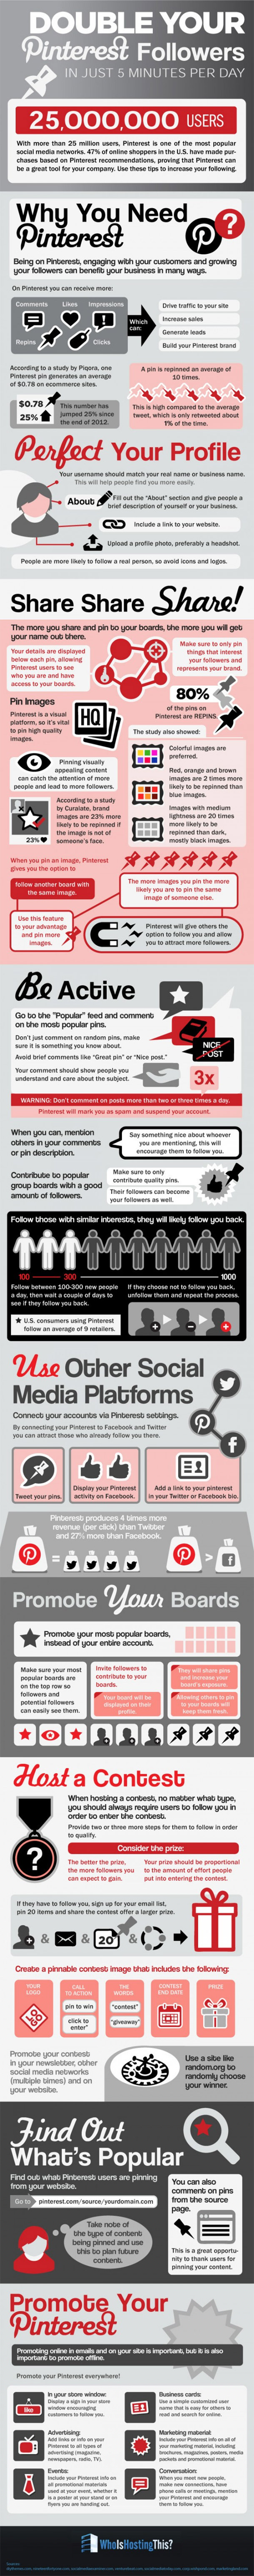 1393548275-how-get-more-pinterest-followers-infographic